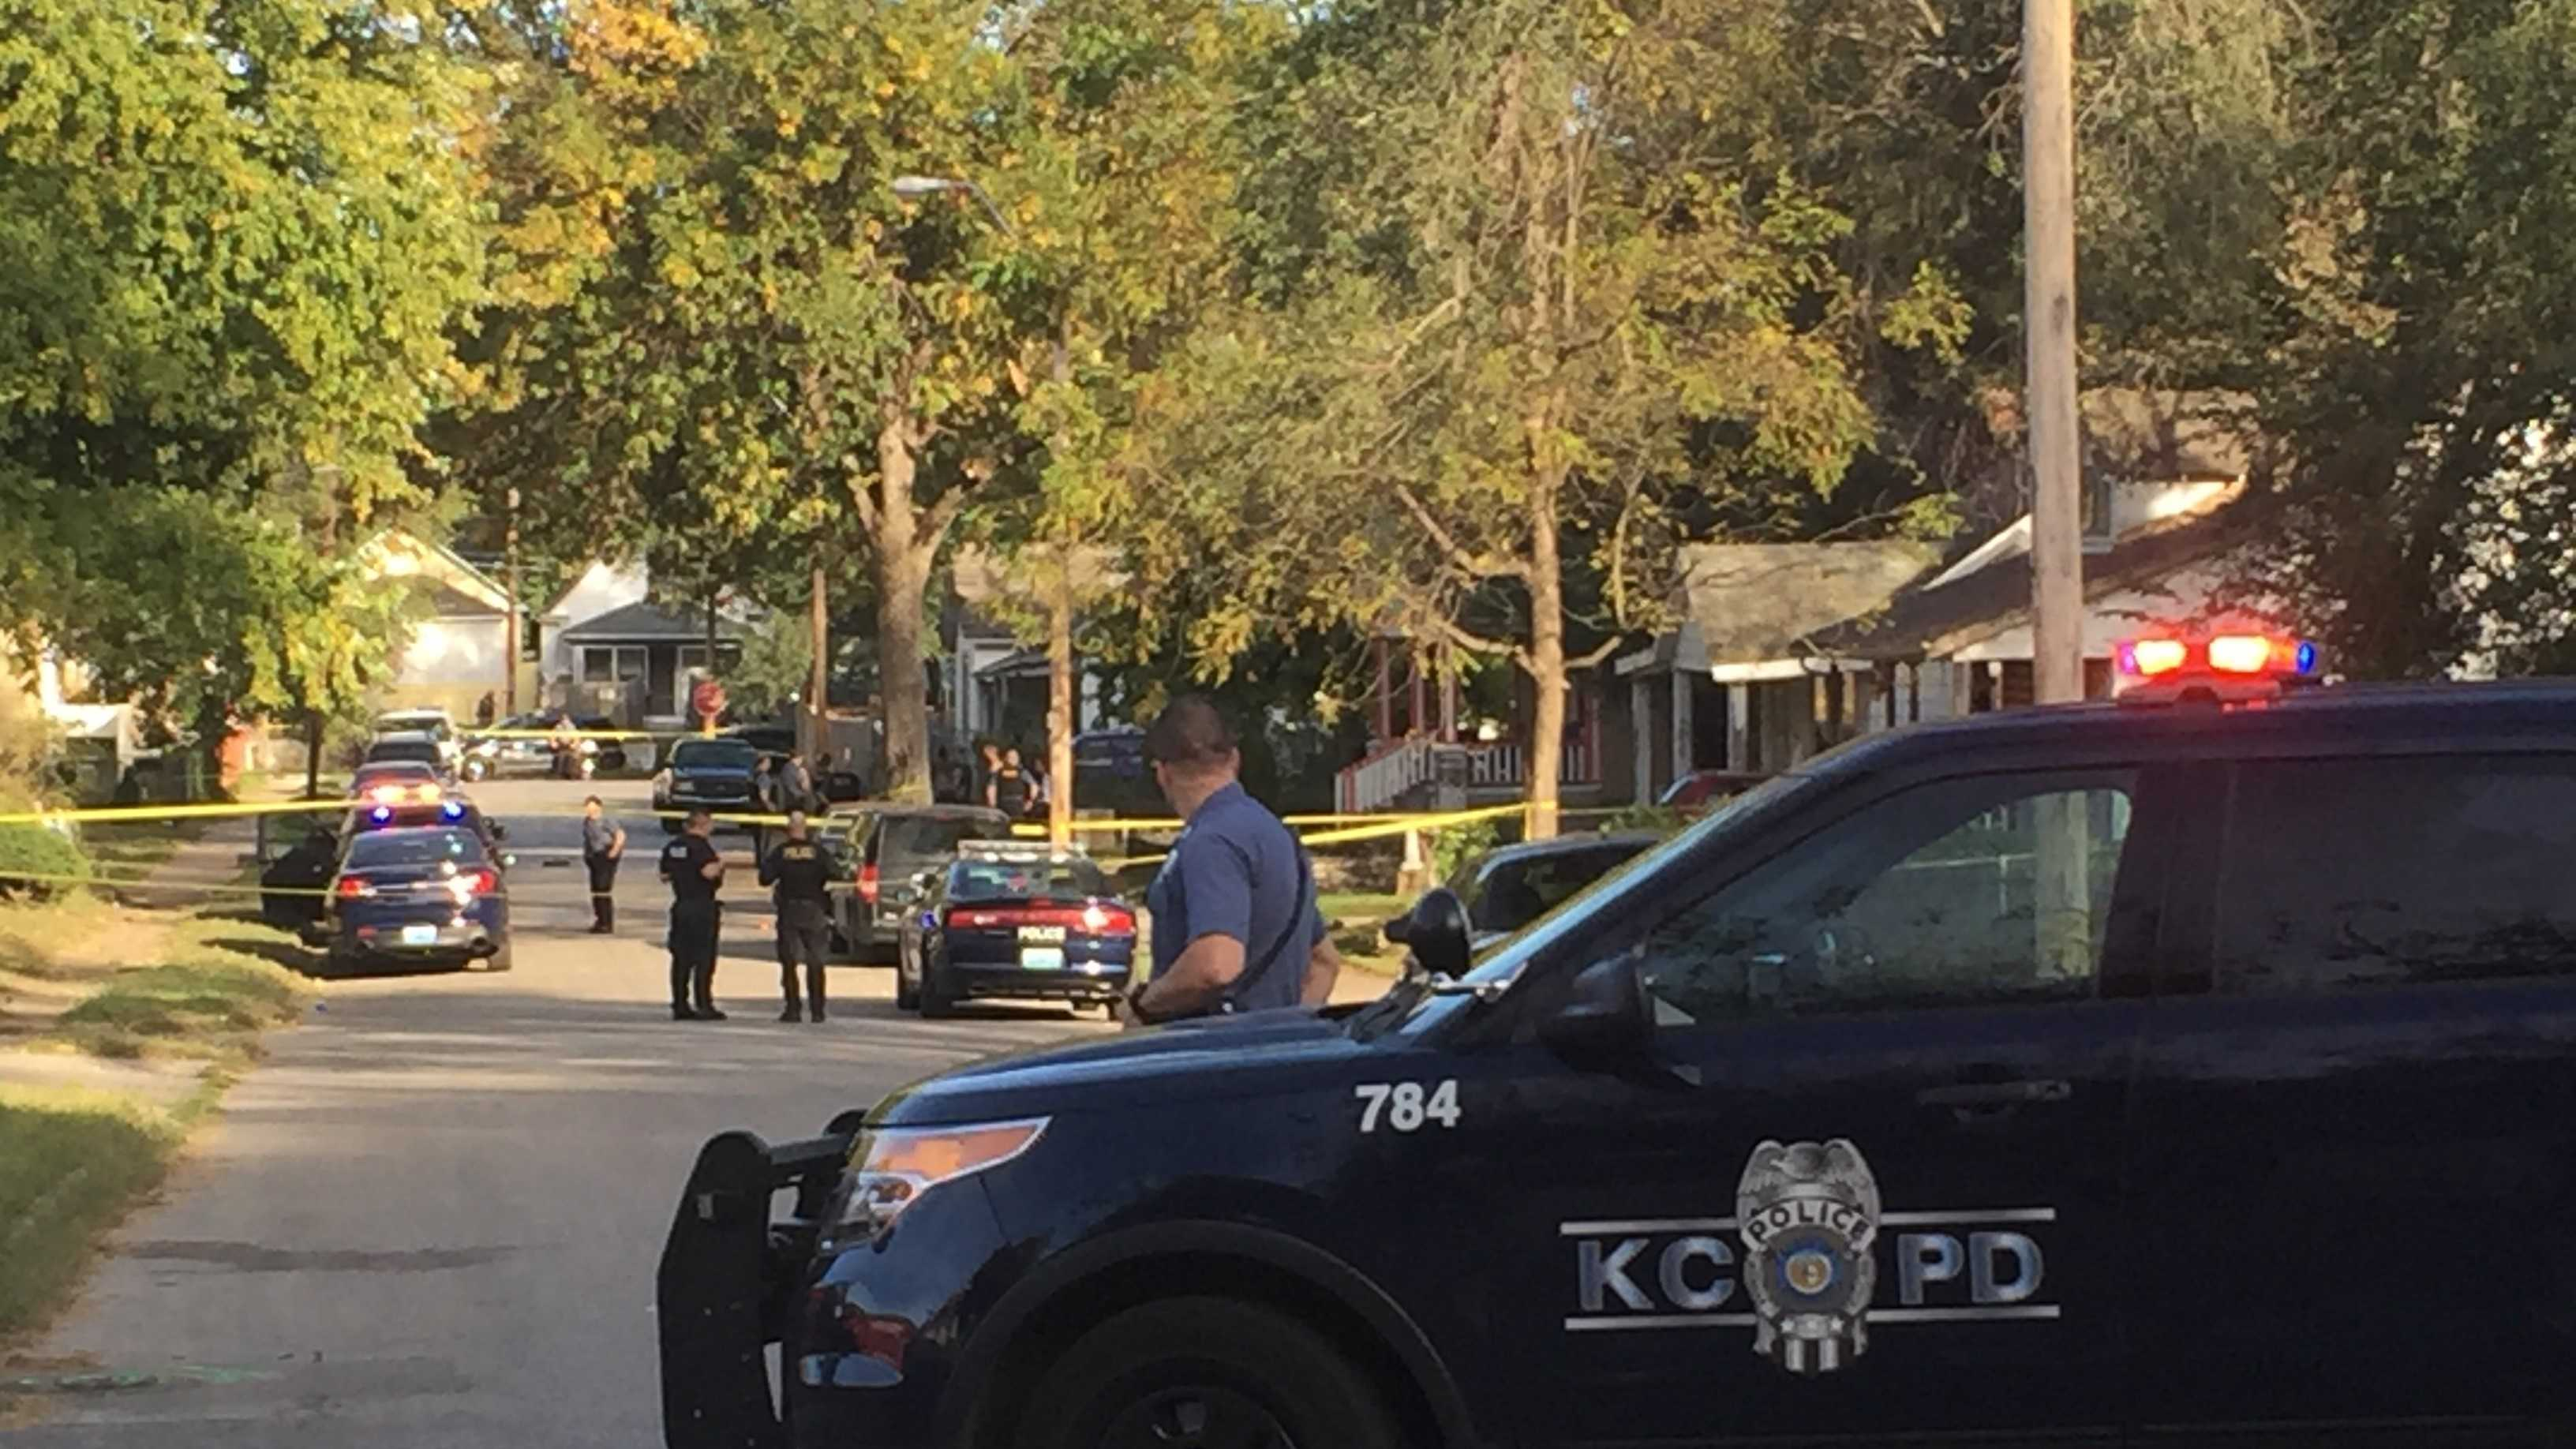 Kansas City police are investigating after a person was shot in the leg near Sixth Street and Cleveland Avenue late Saturday afternoon.